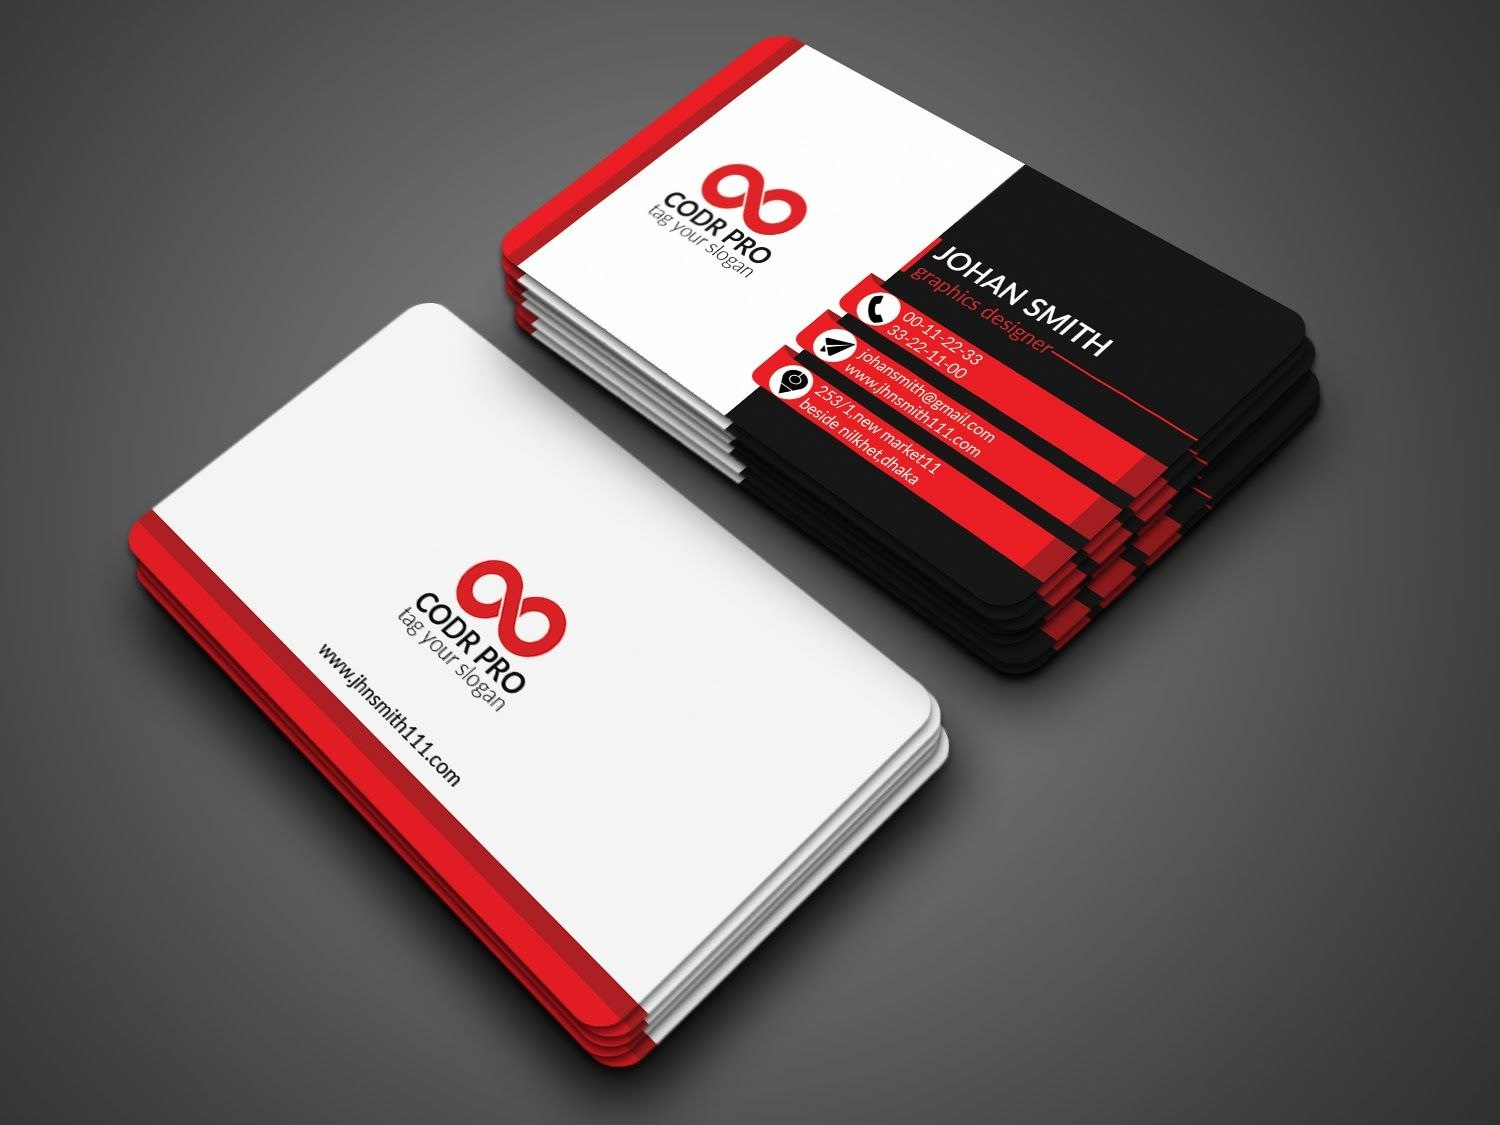 Professional Business Card Design In Photoshop Cs Tutorial Pertaining To Photoshop Cs6 Business Card Template